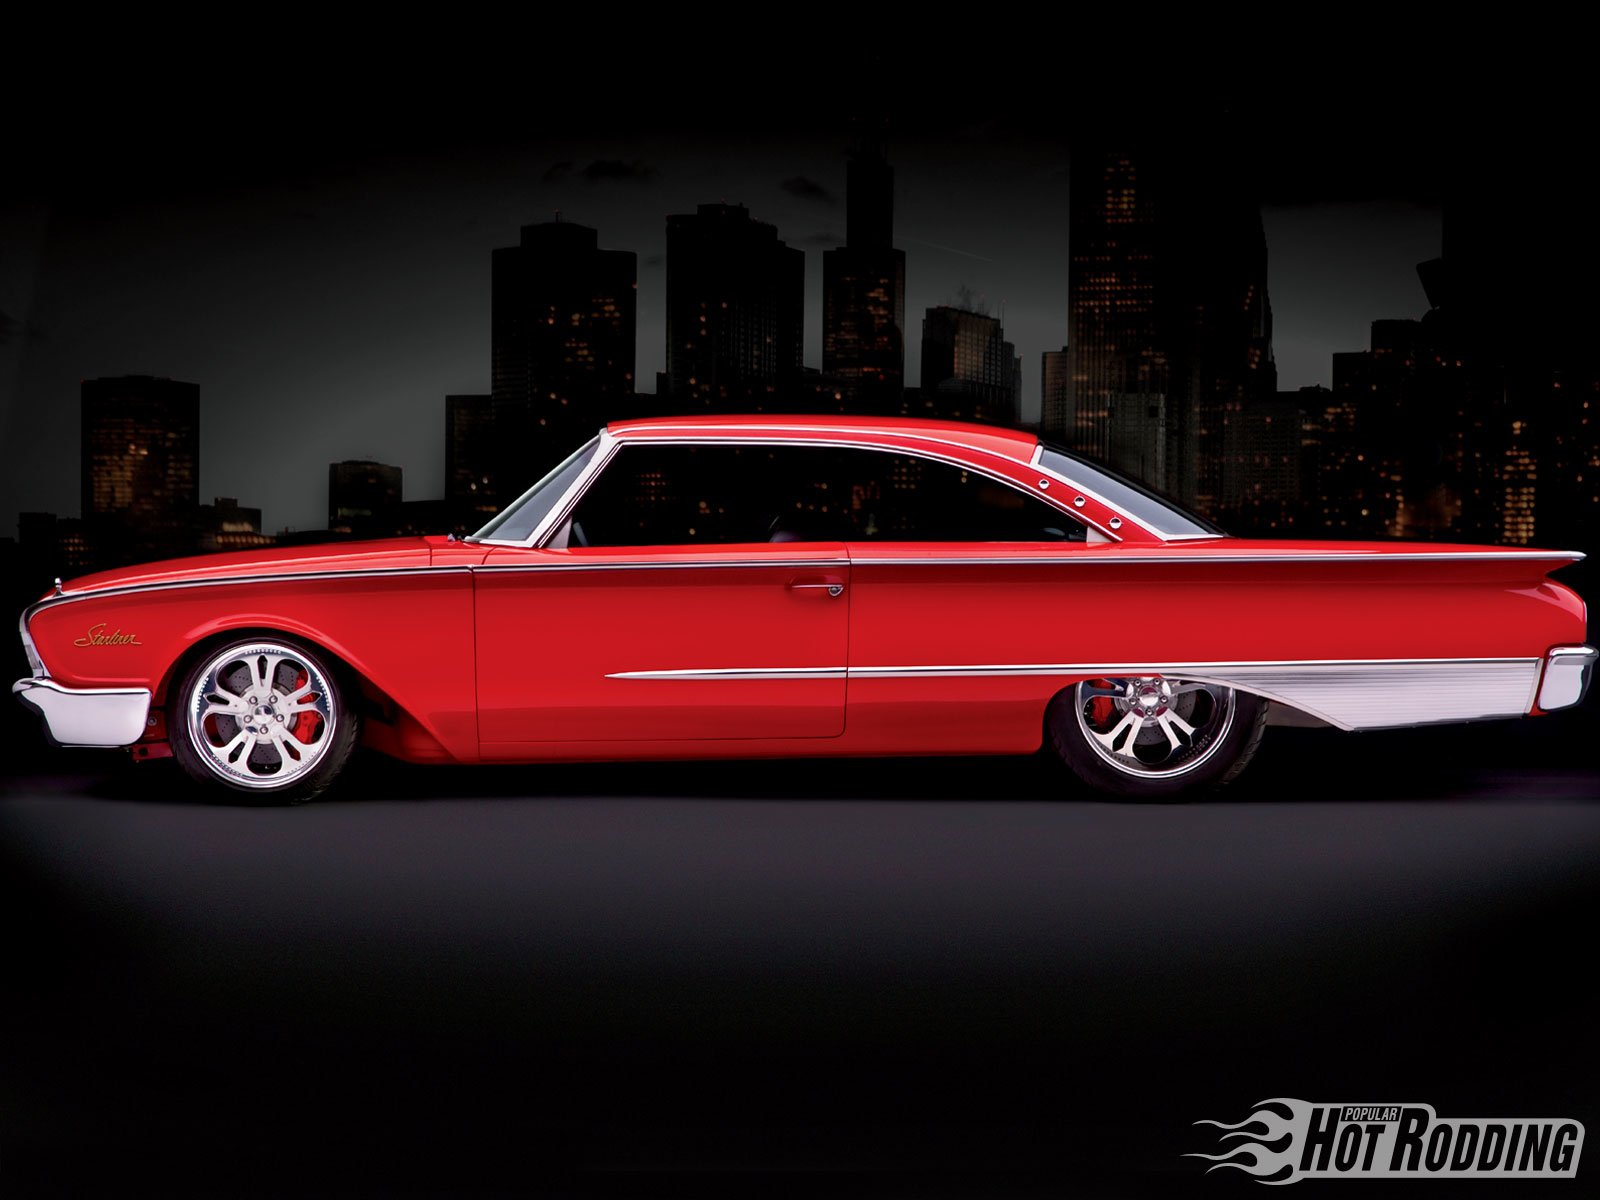 Classic Muscle Car Wallpapers Hd 1680x1050 1960 Ford Starliner Wallpaper And Background Image